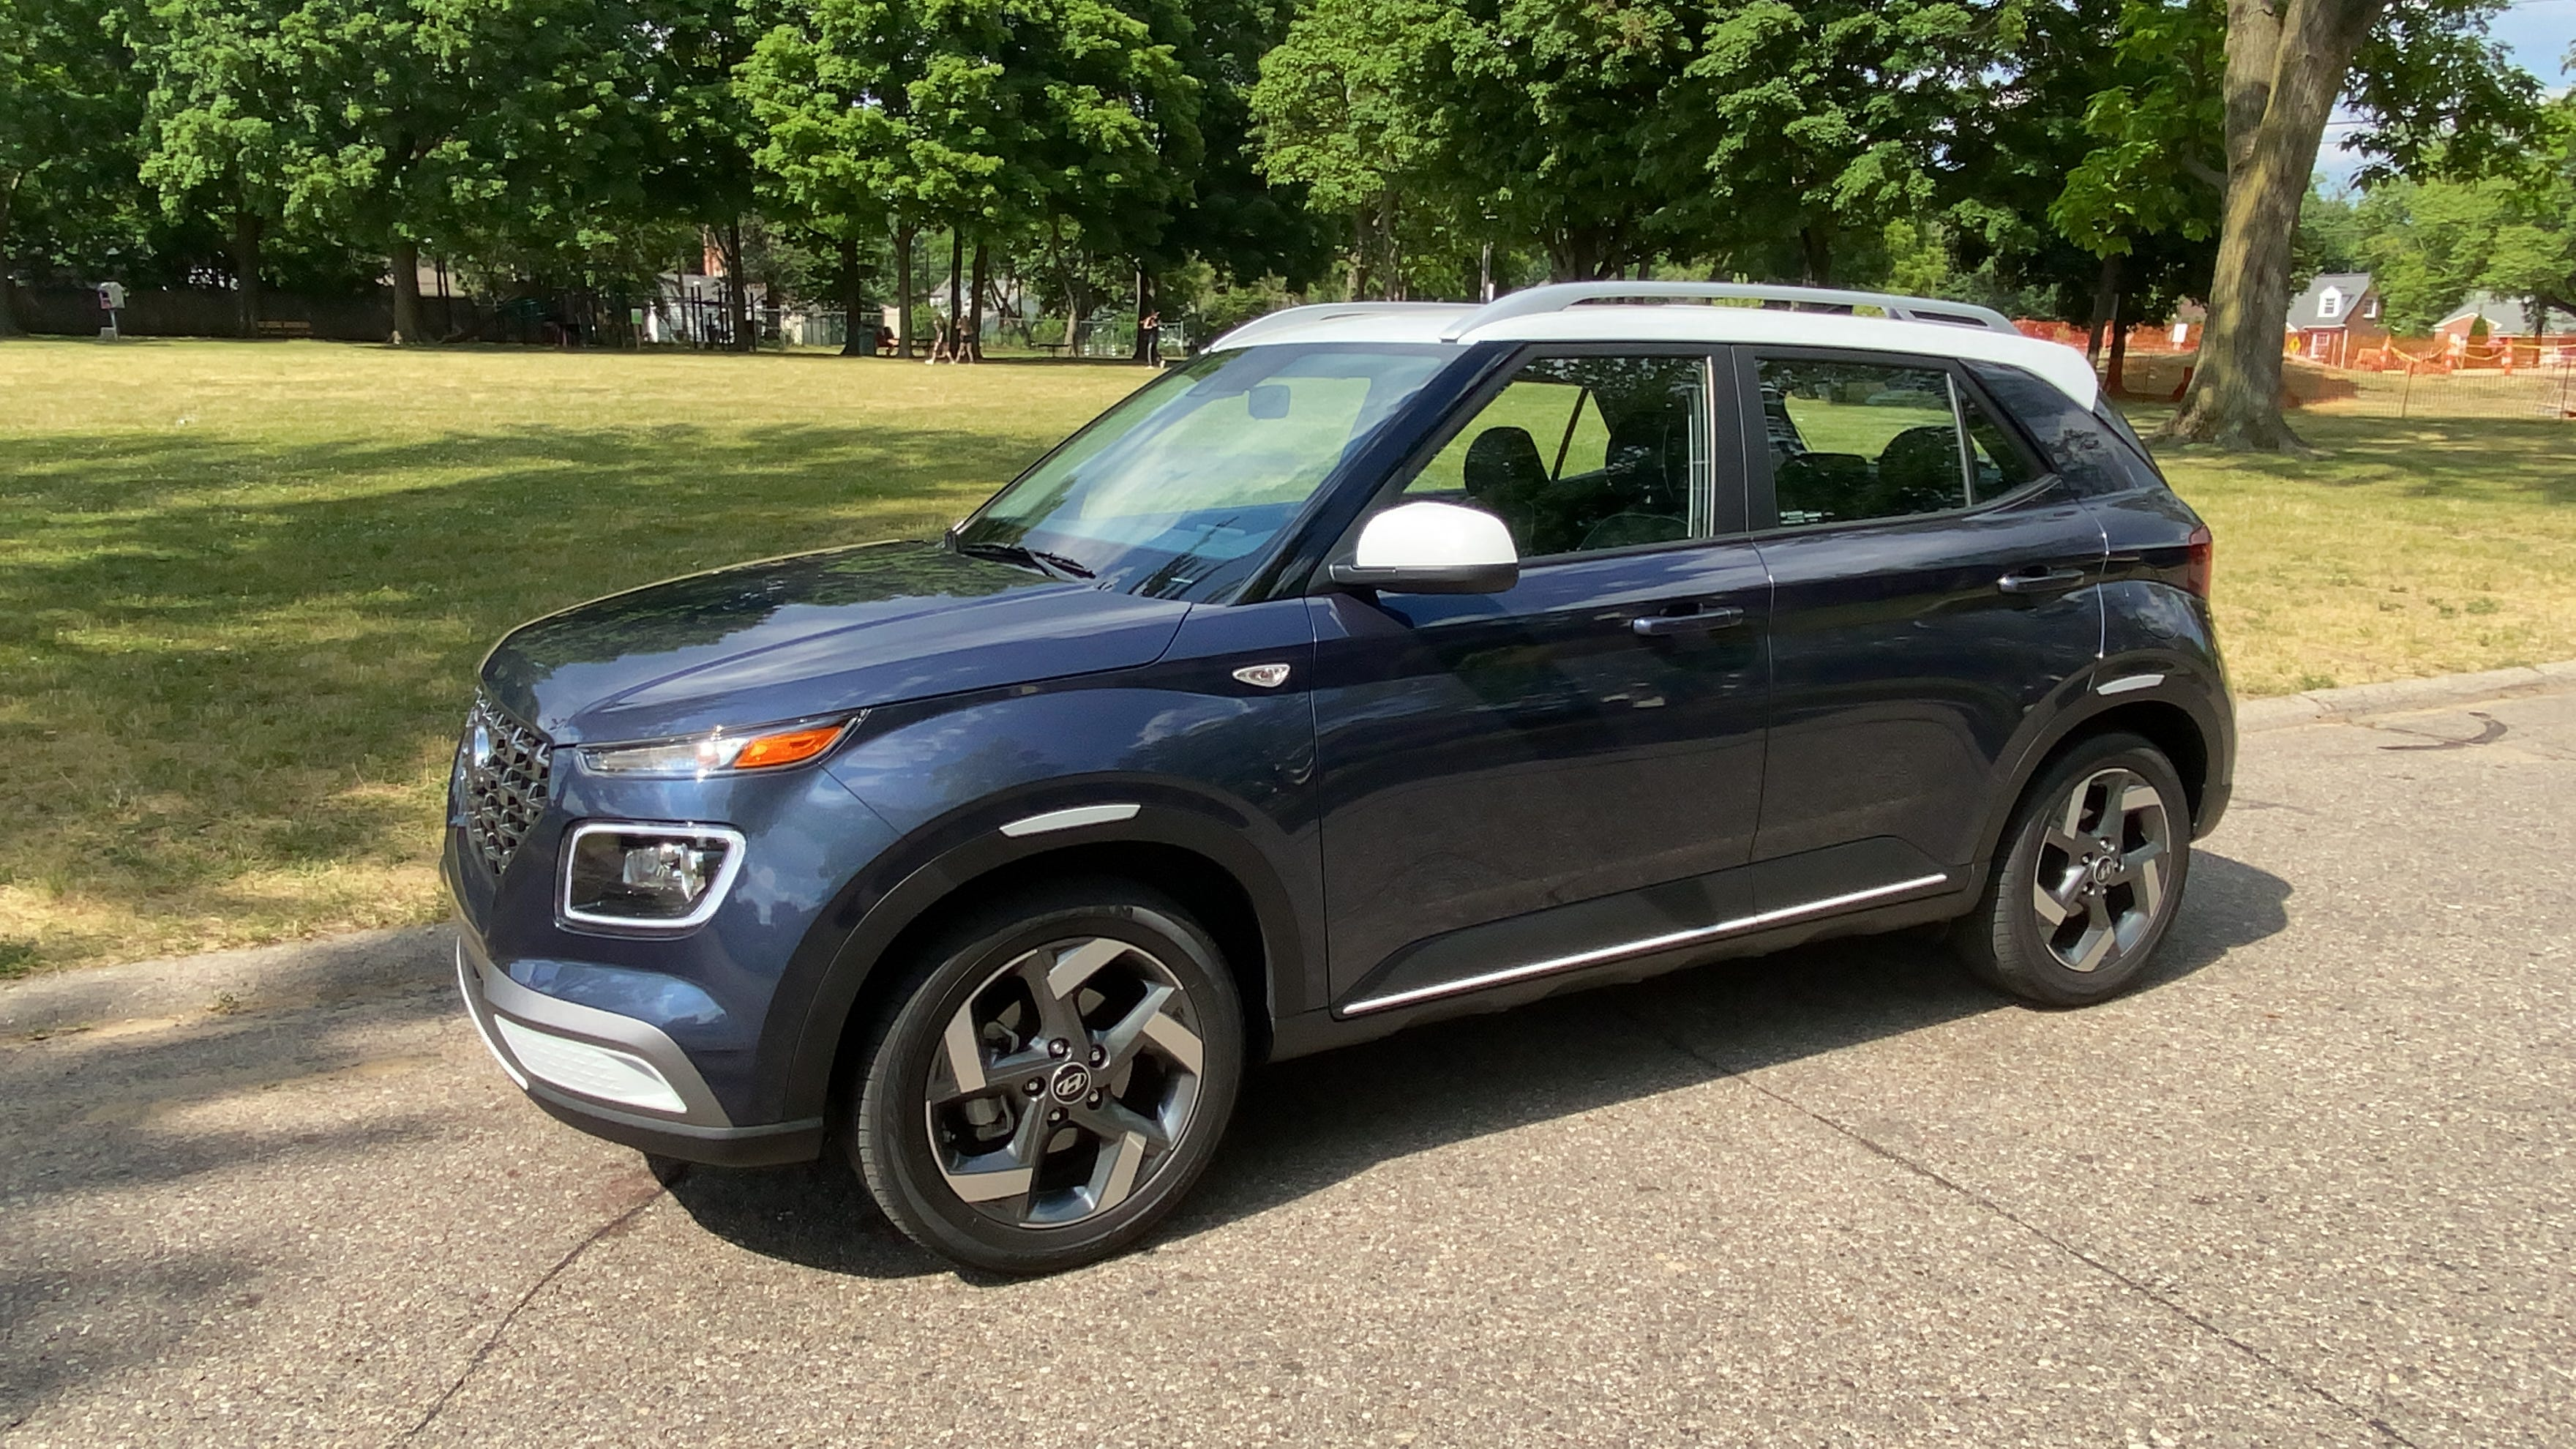 2020 Hyundai Venue Suv Packs Features Value Into Small Package